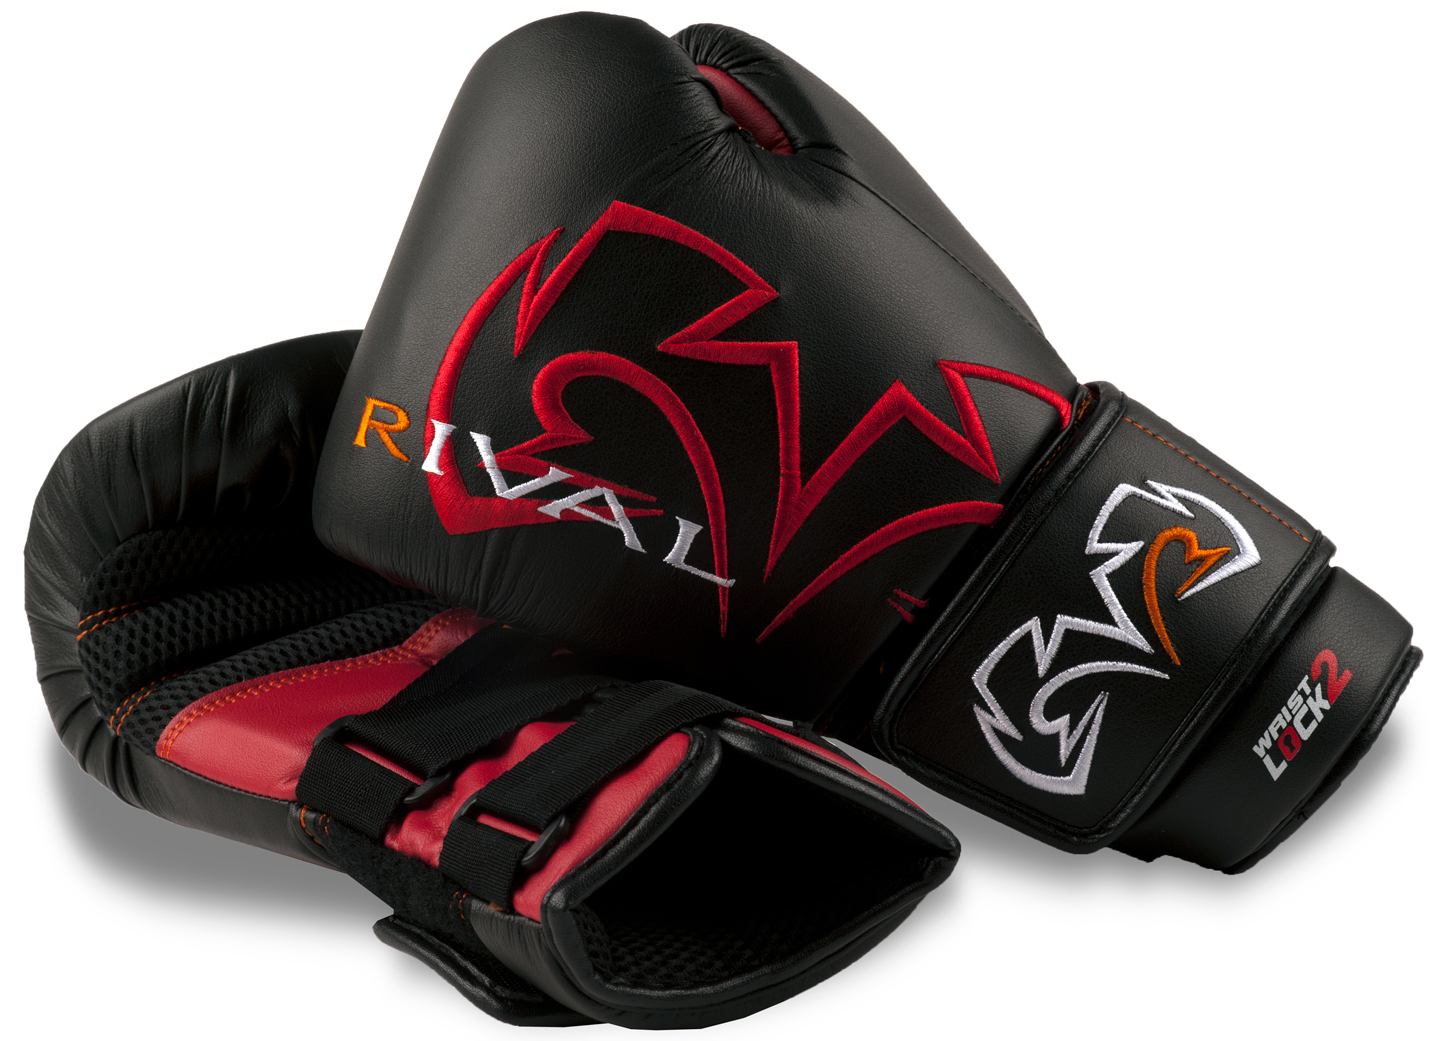 Rival Boxing Evolution Bag Gloves - Black/Red at Sears.com